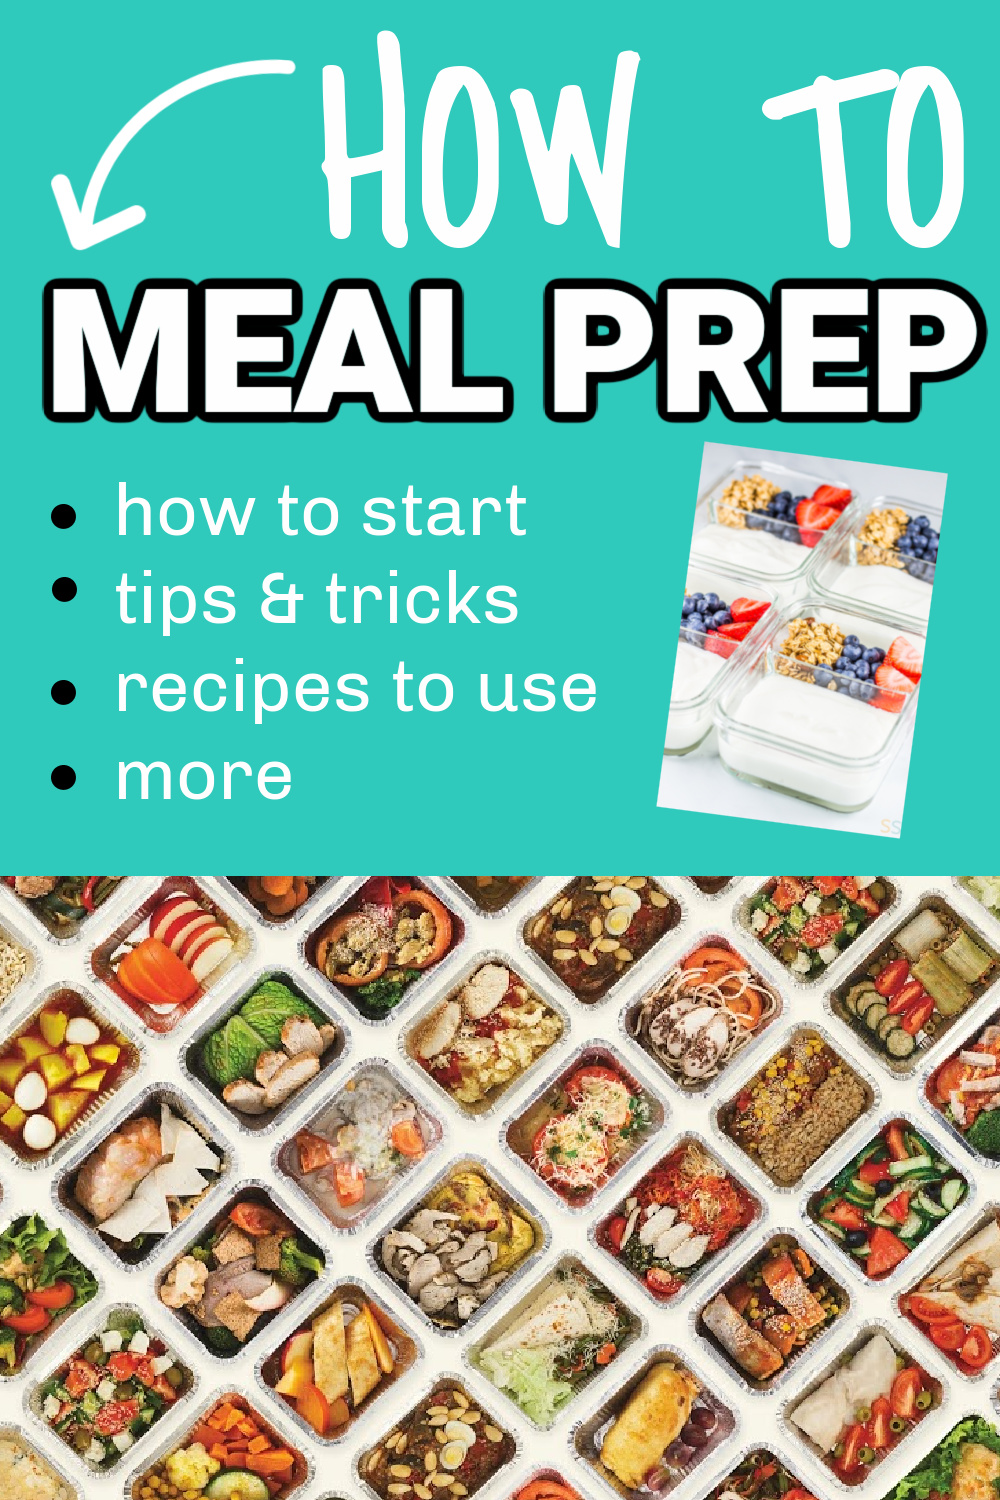 How to Meal Prep 101